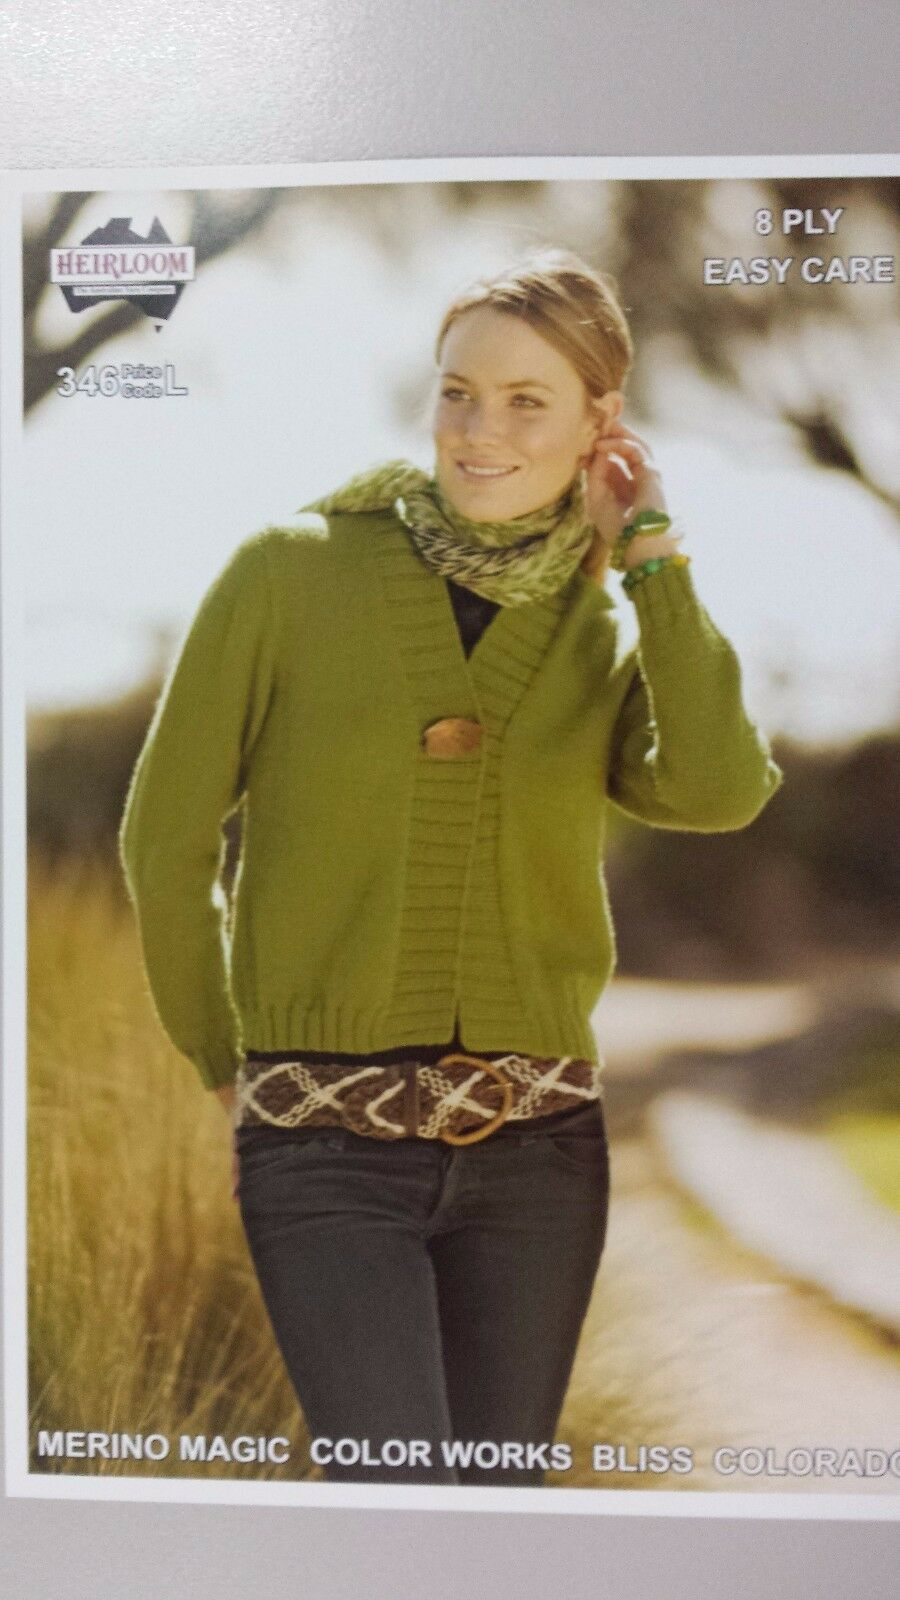 Heirloom Knitting Pattern #346 to Knit Ladies Cardigan in 8 Ply   AUD 6.15 - ...